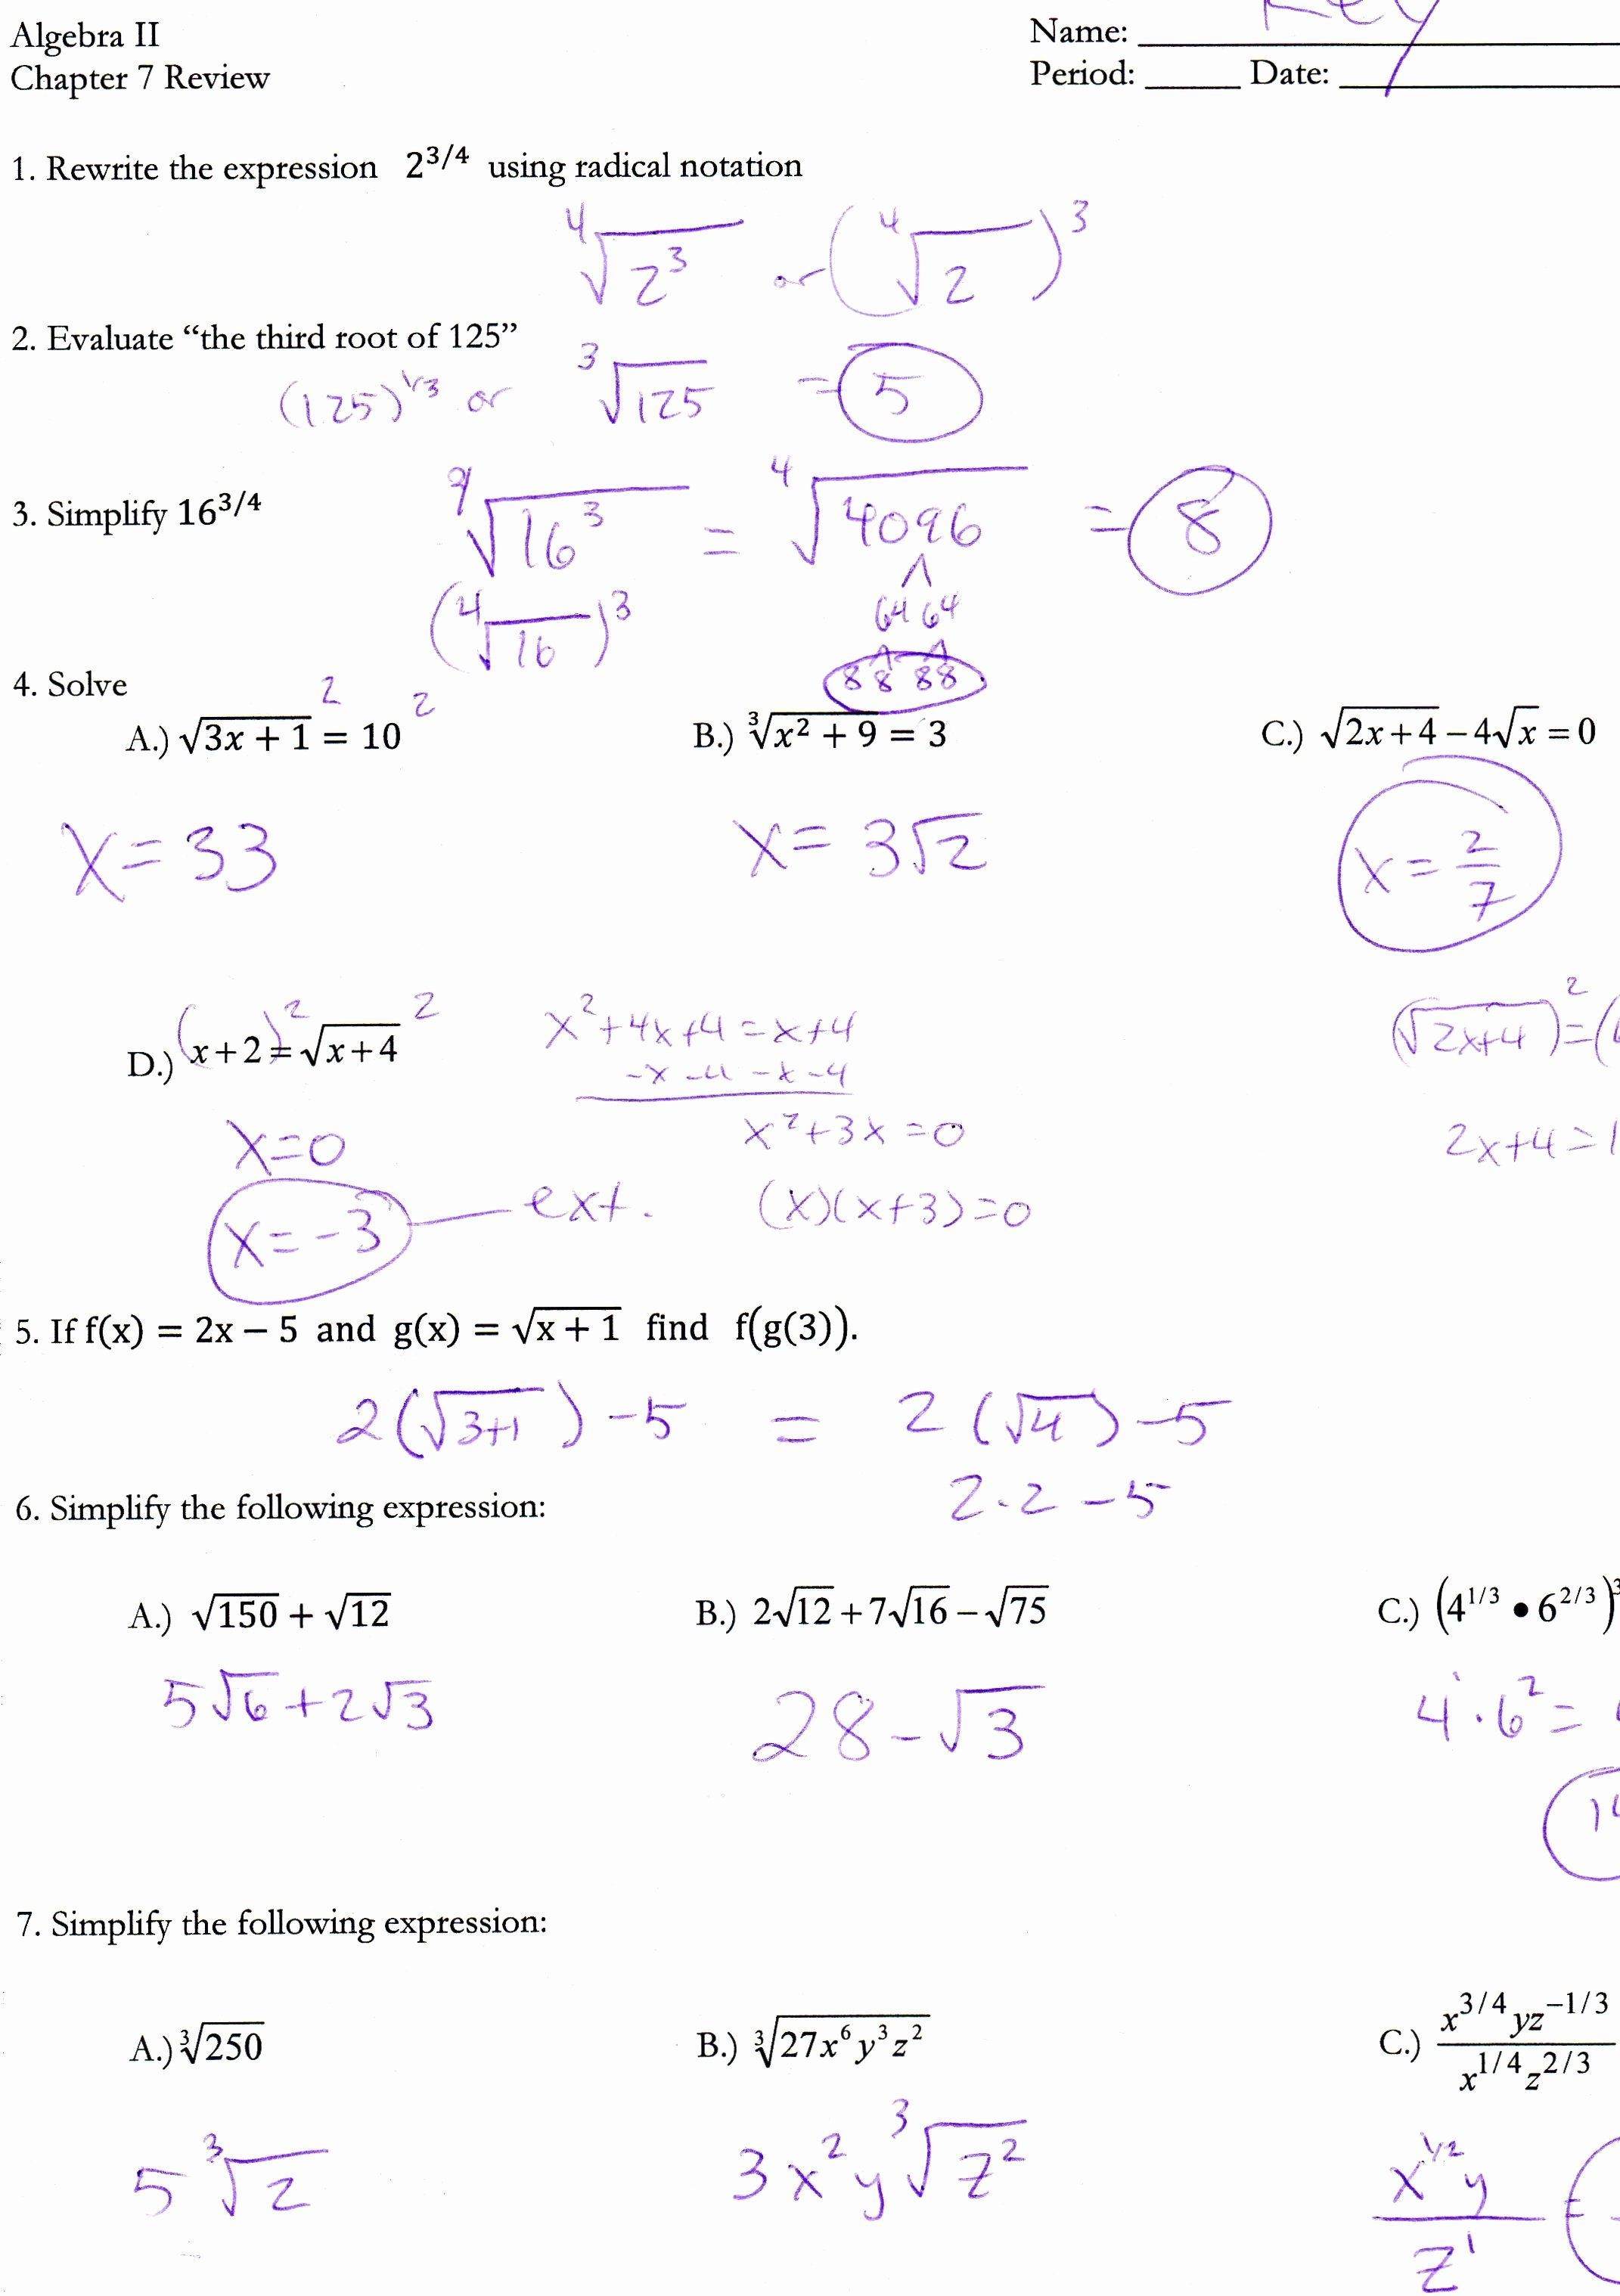 Solve Radical Equations Worksheet Luxury Radicals Worksheet Algebra 2